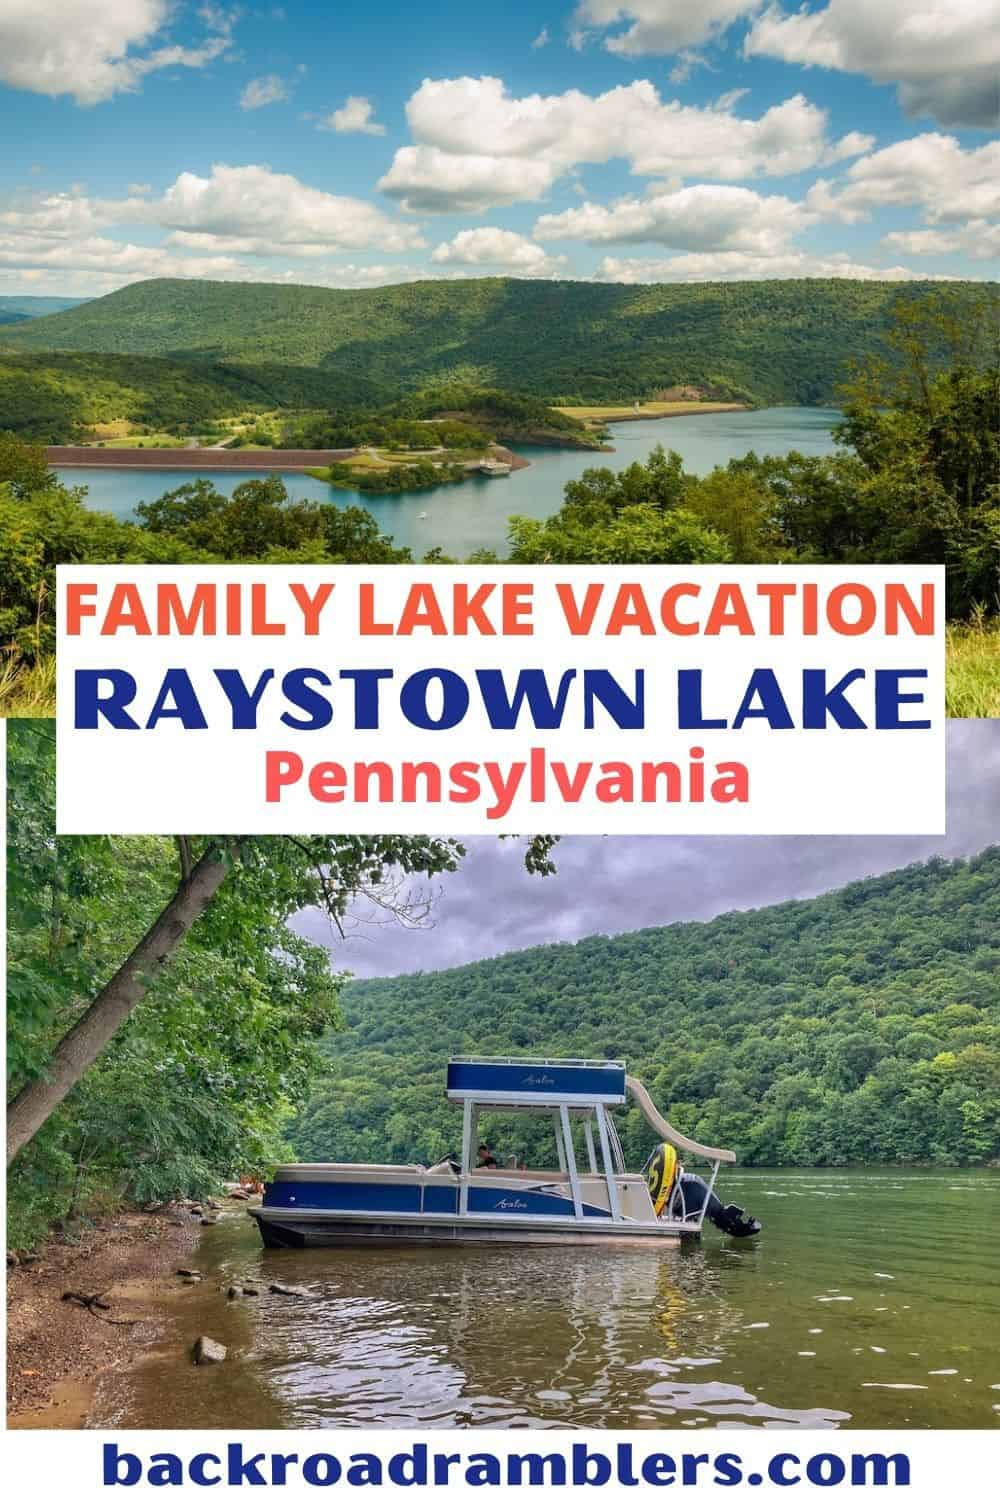 Two photos featuring Raystown Lake in Pennsylvania. Text Overlay: Family Lake Vacation - Raystown Lake, Pennsylvania.